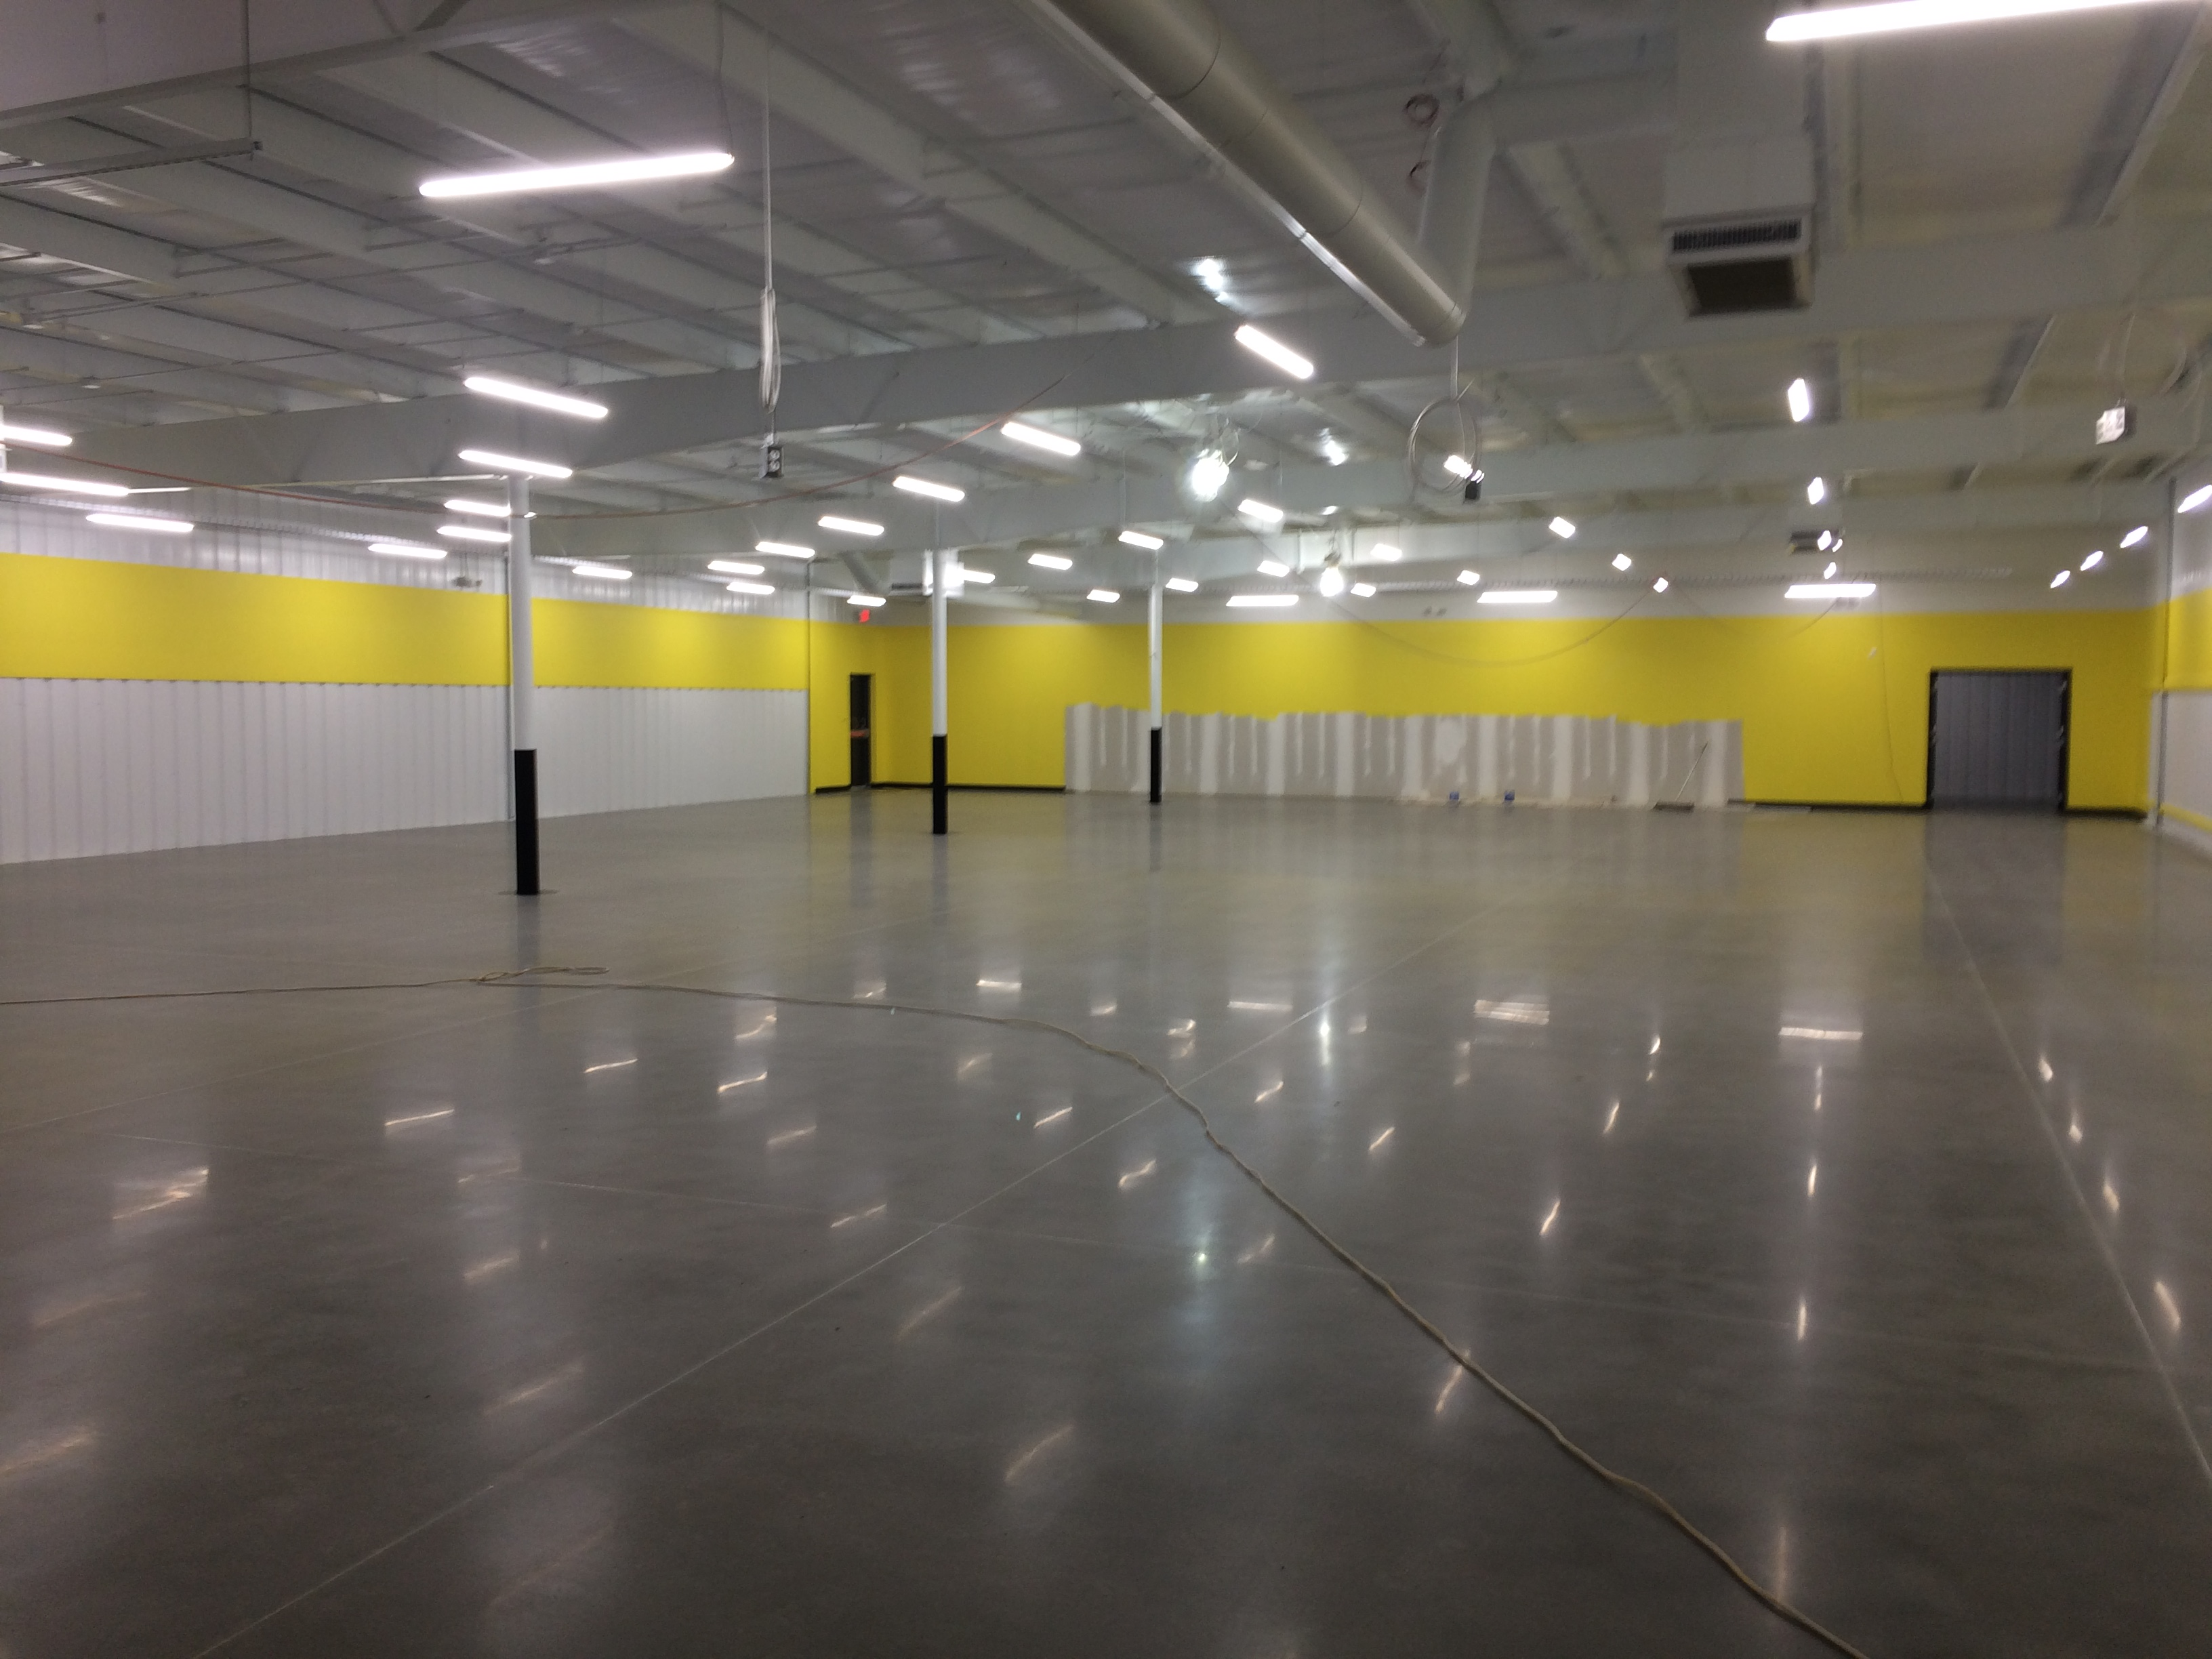 inside 1, dollar general, foster wv,, shopping, supermarket, retail, commercial, commercial construction